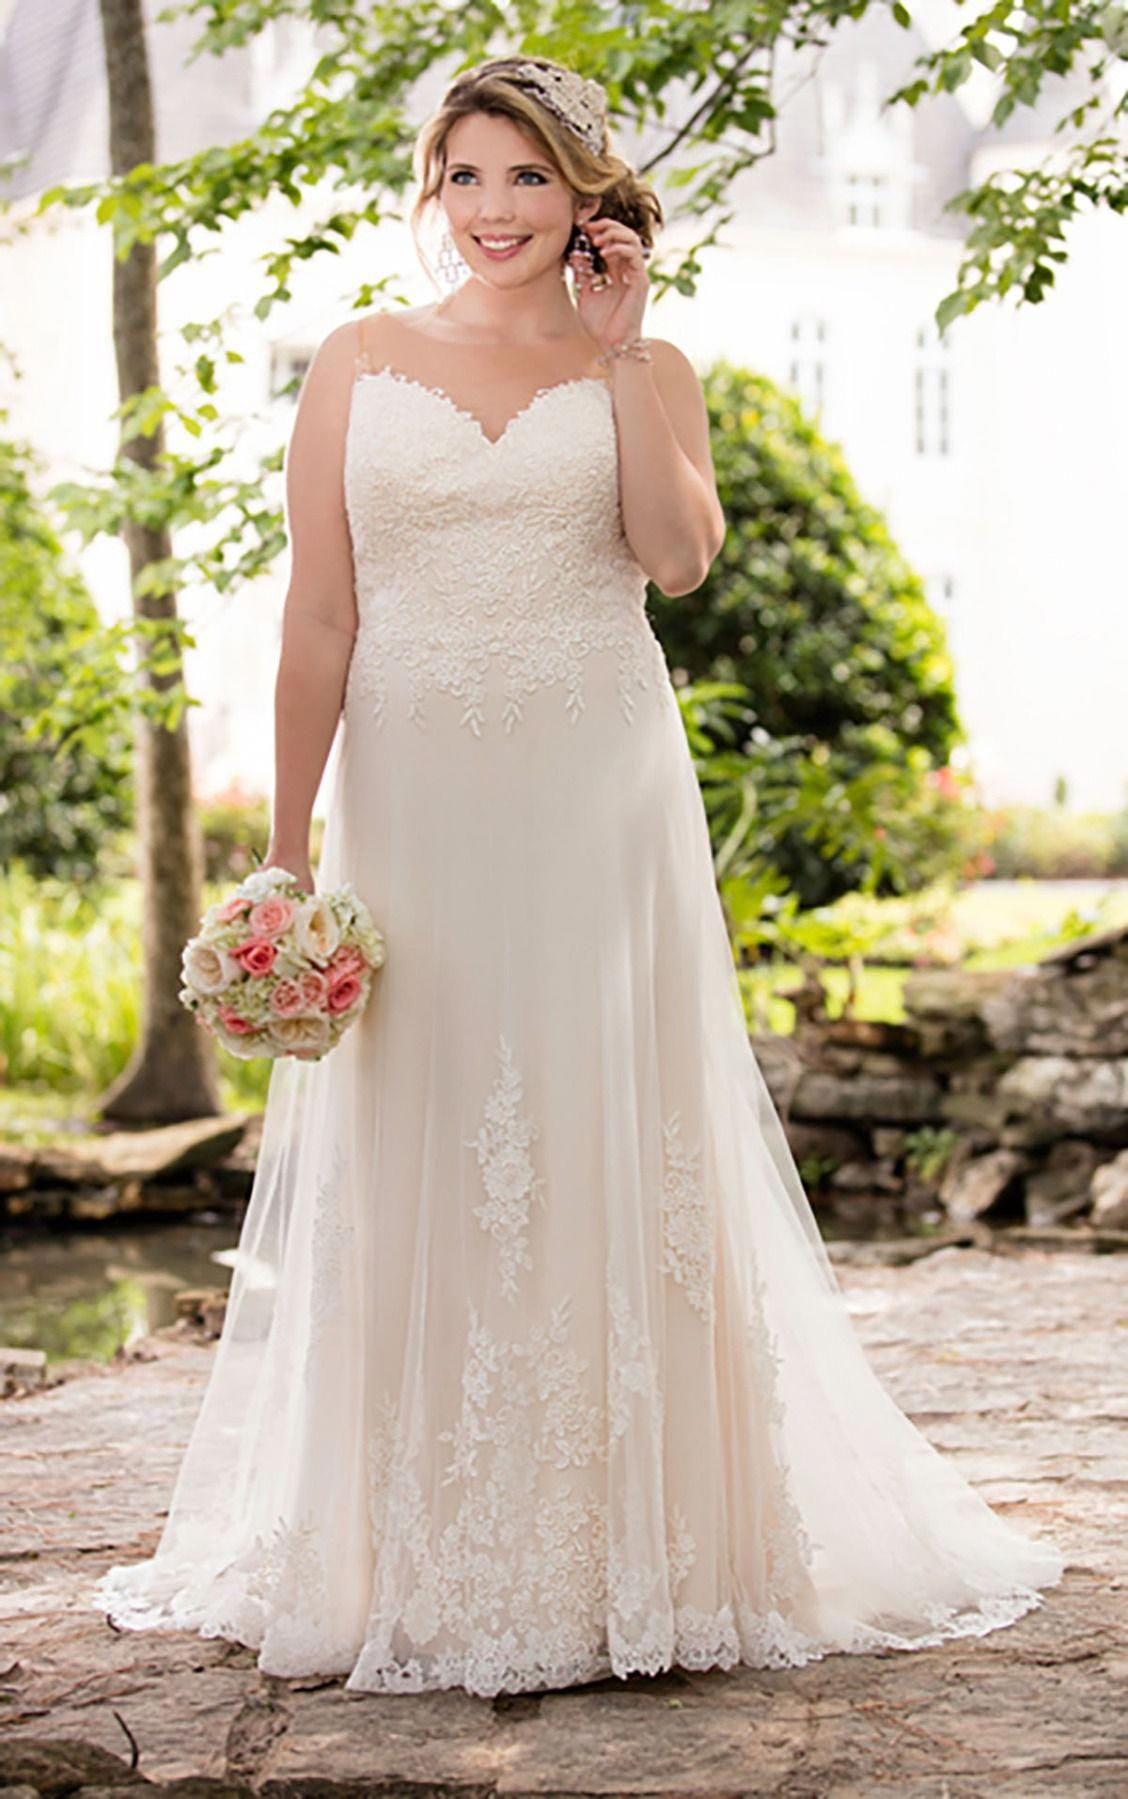 Best wedding dresses for big busts  This plus size Stella York wedding dress features the art of